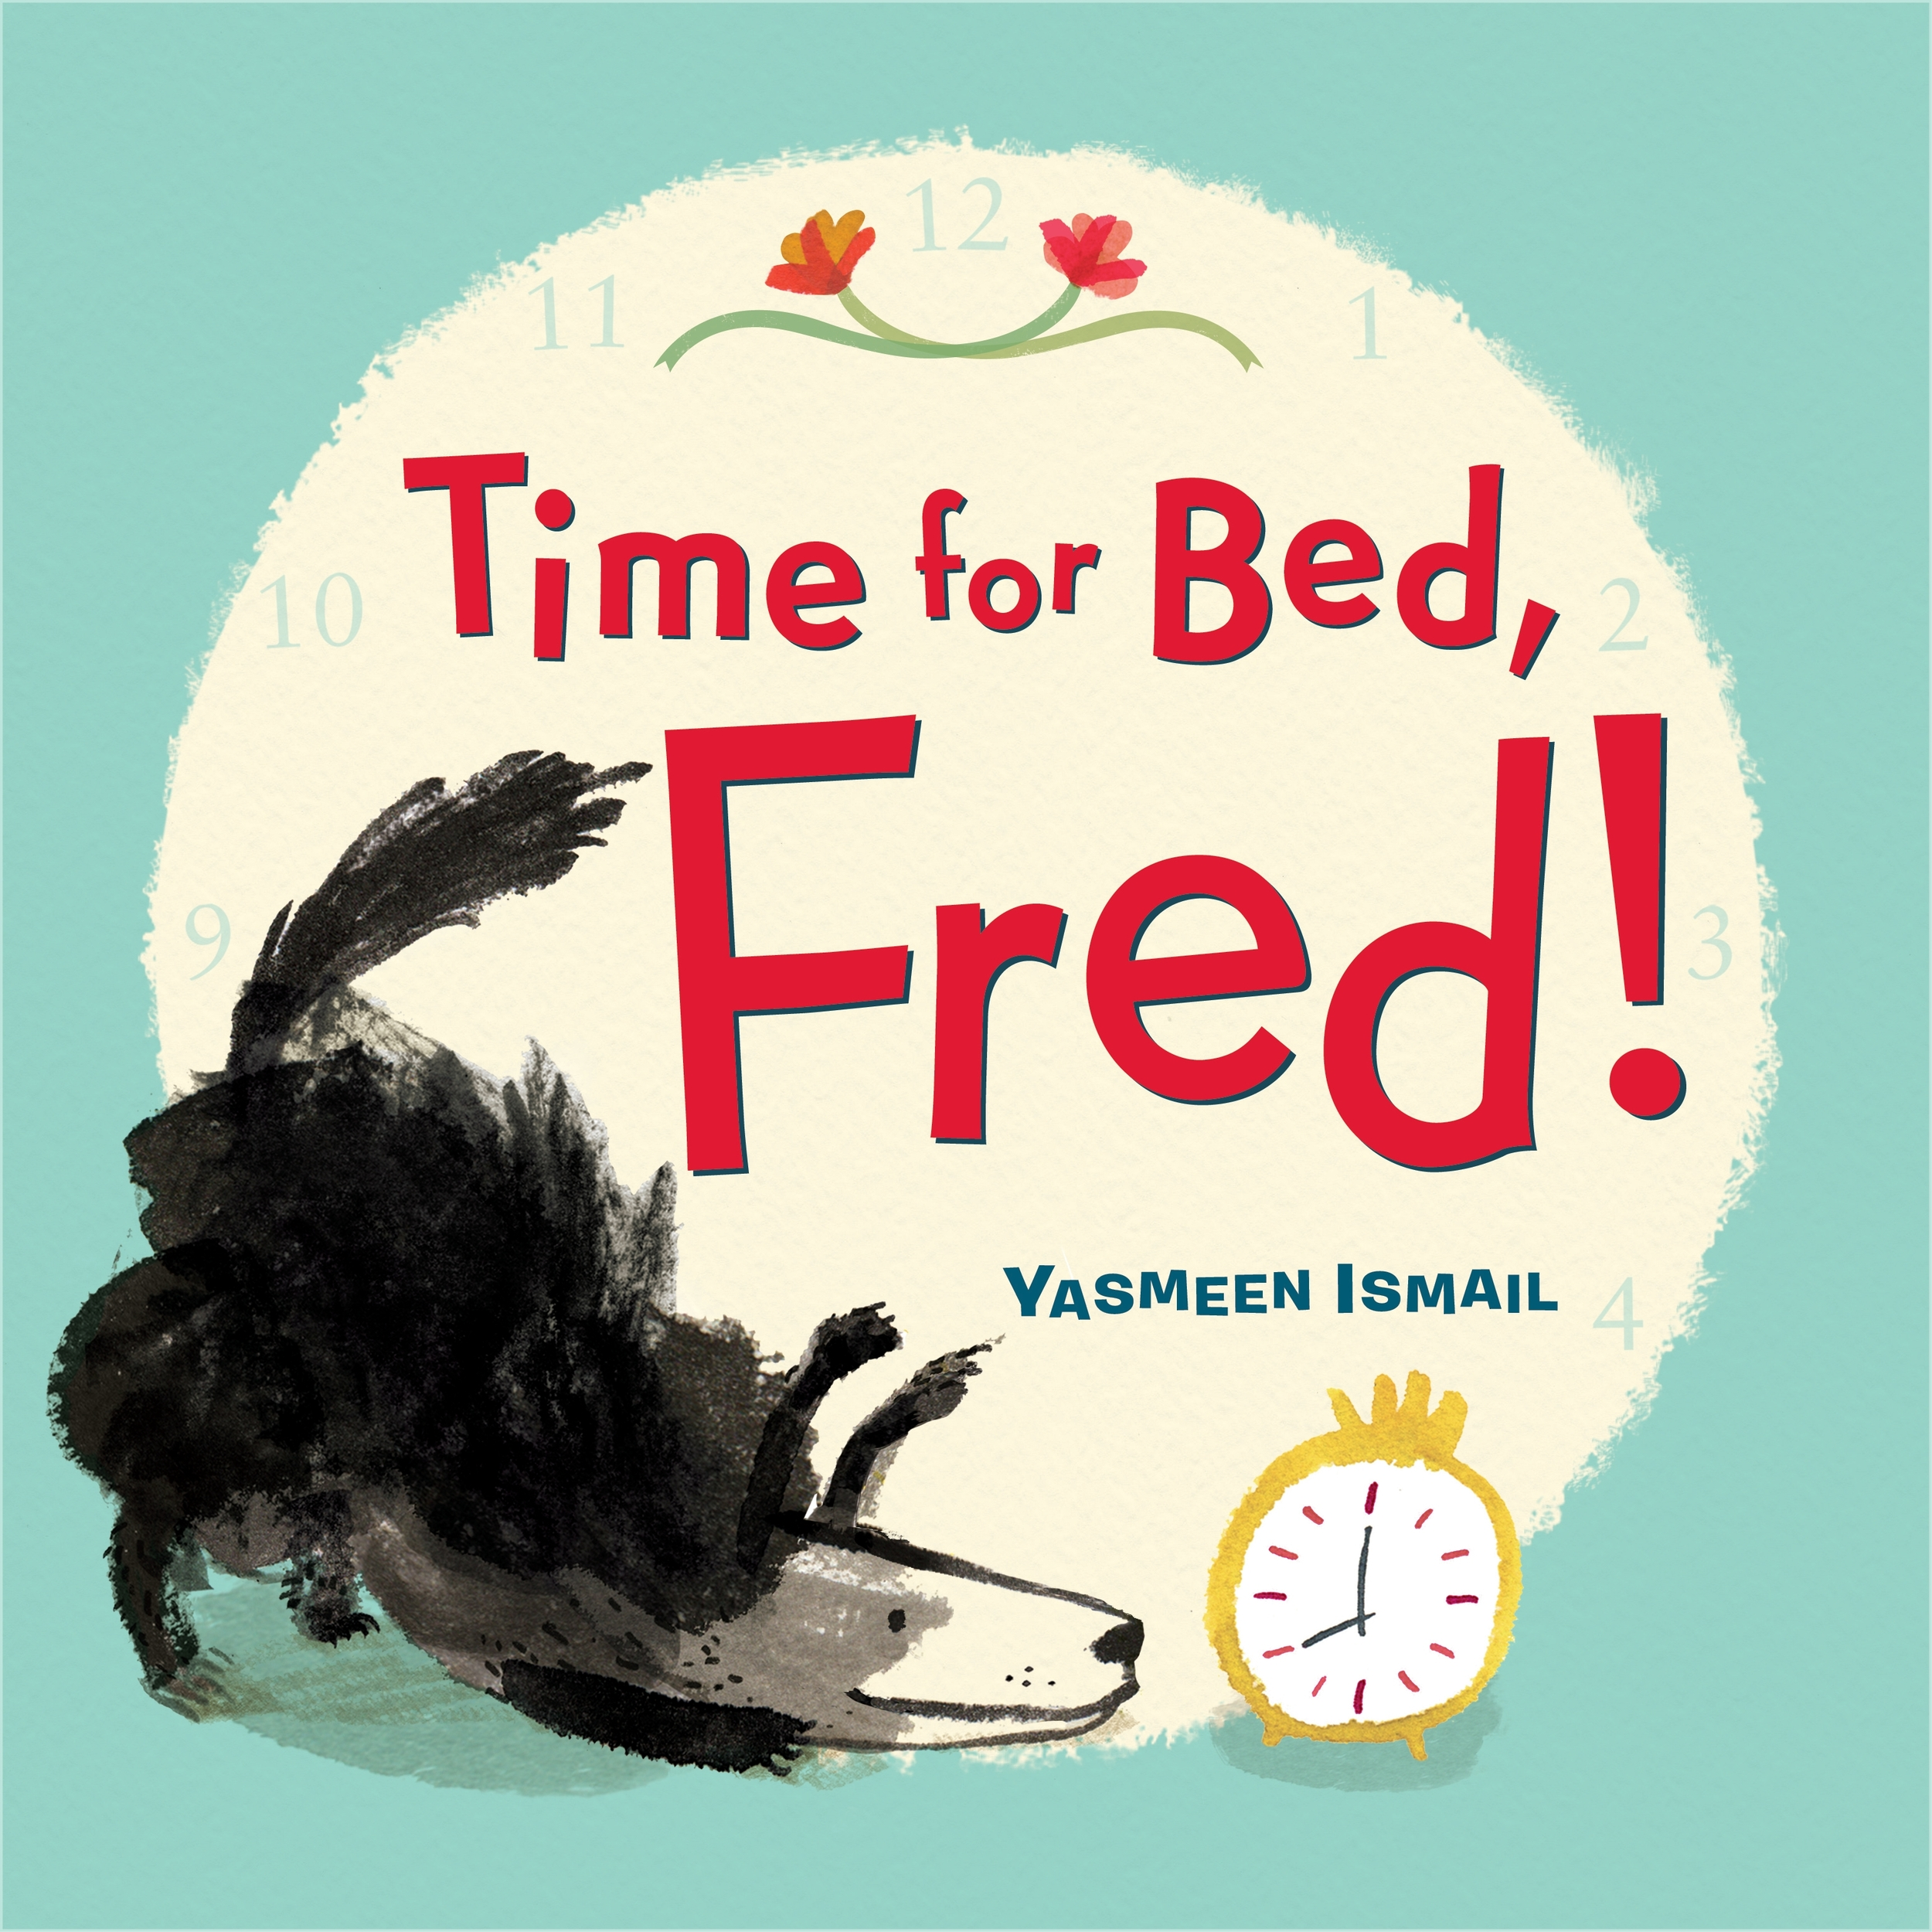 Time for Bed Fred hires cover.jpg